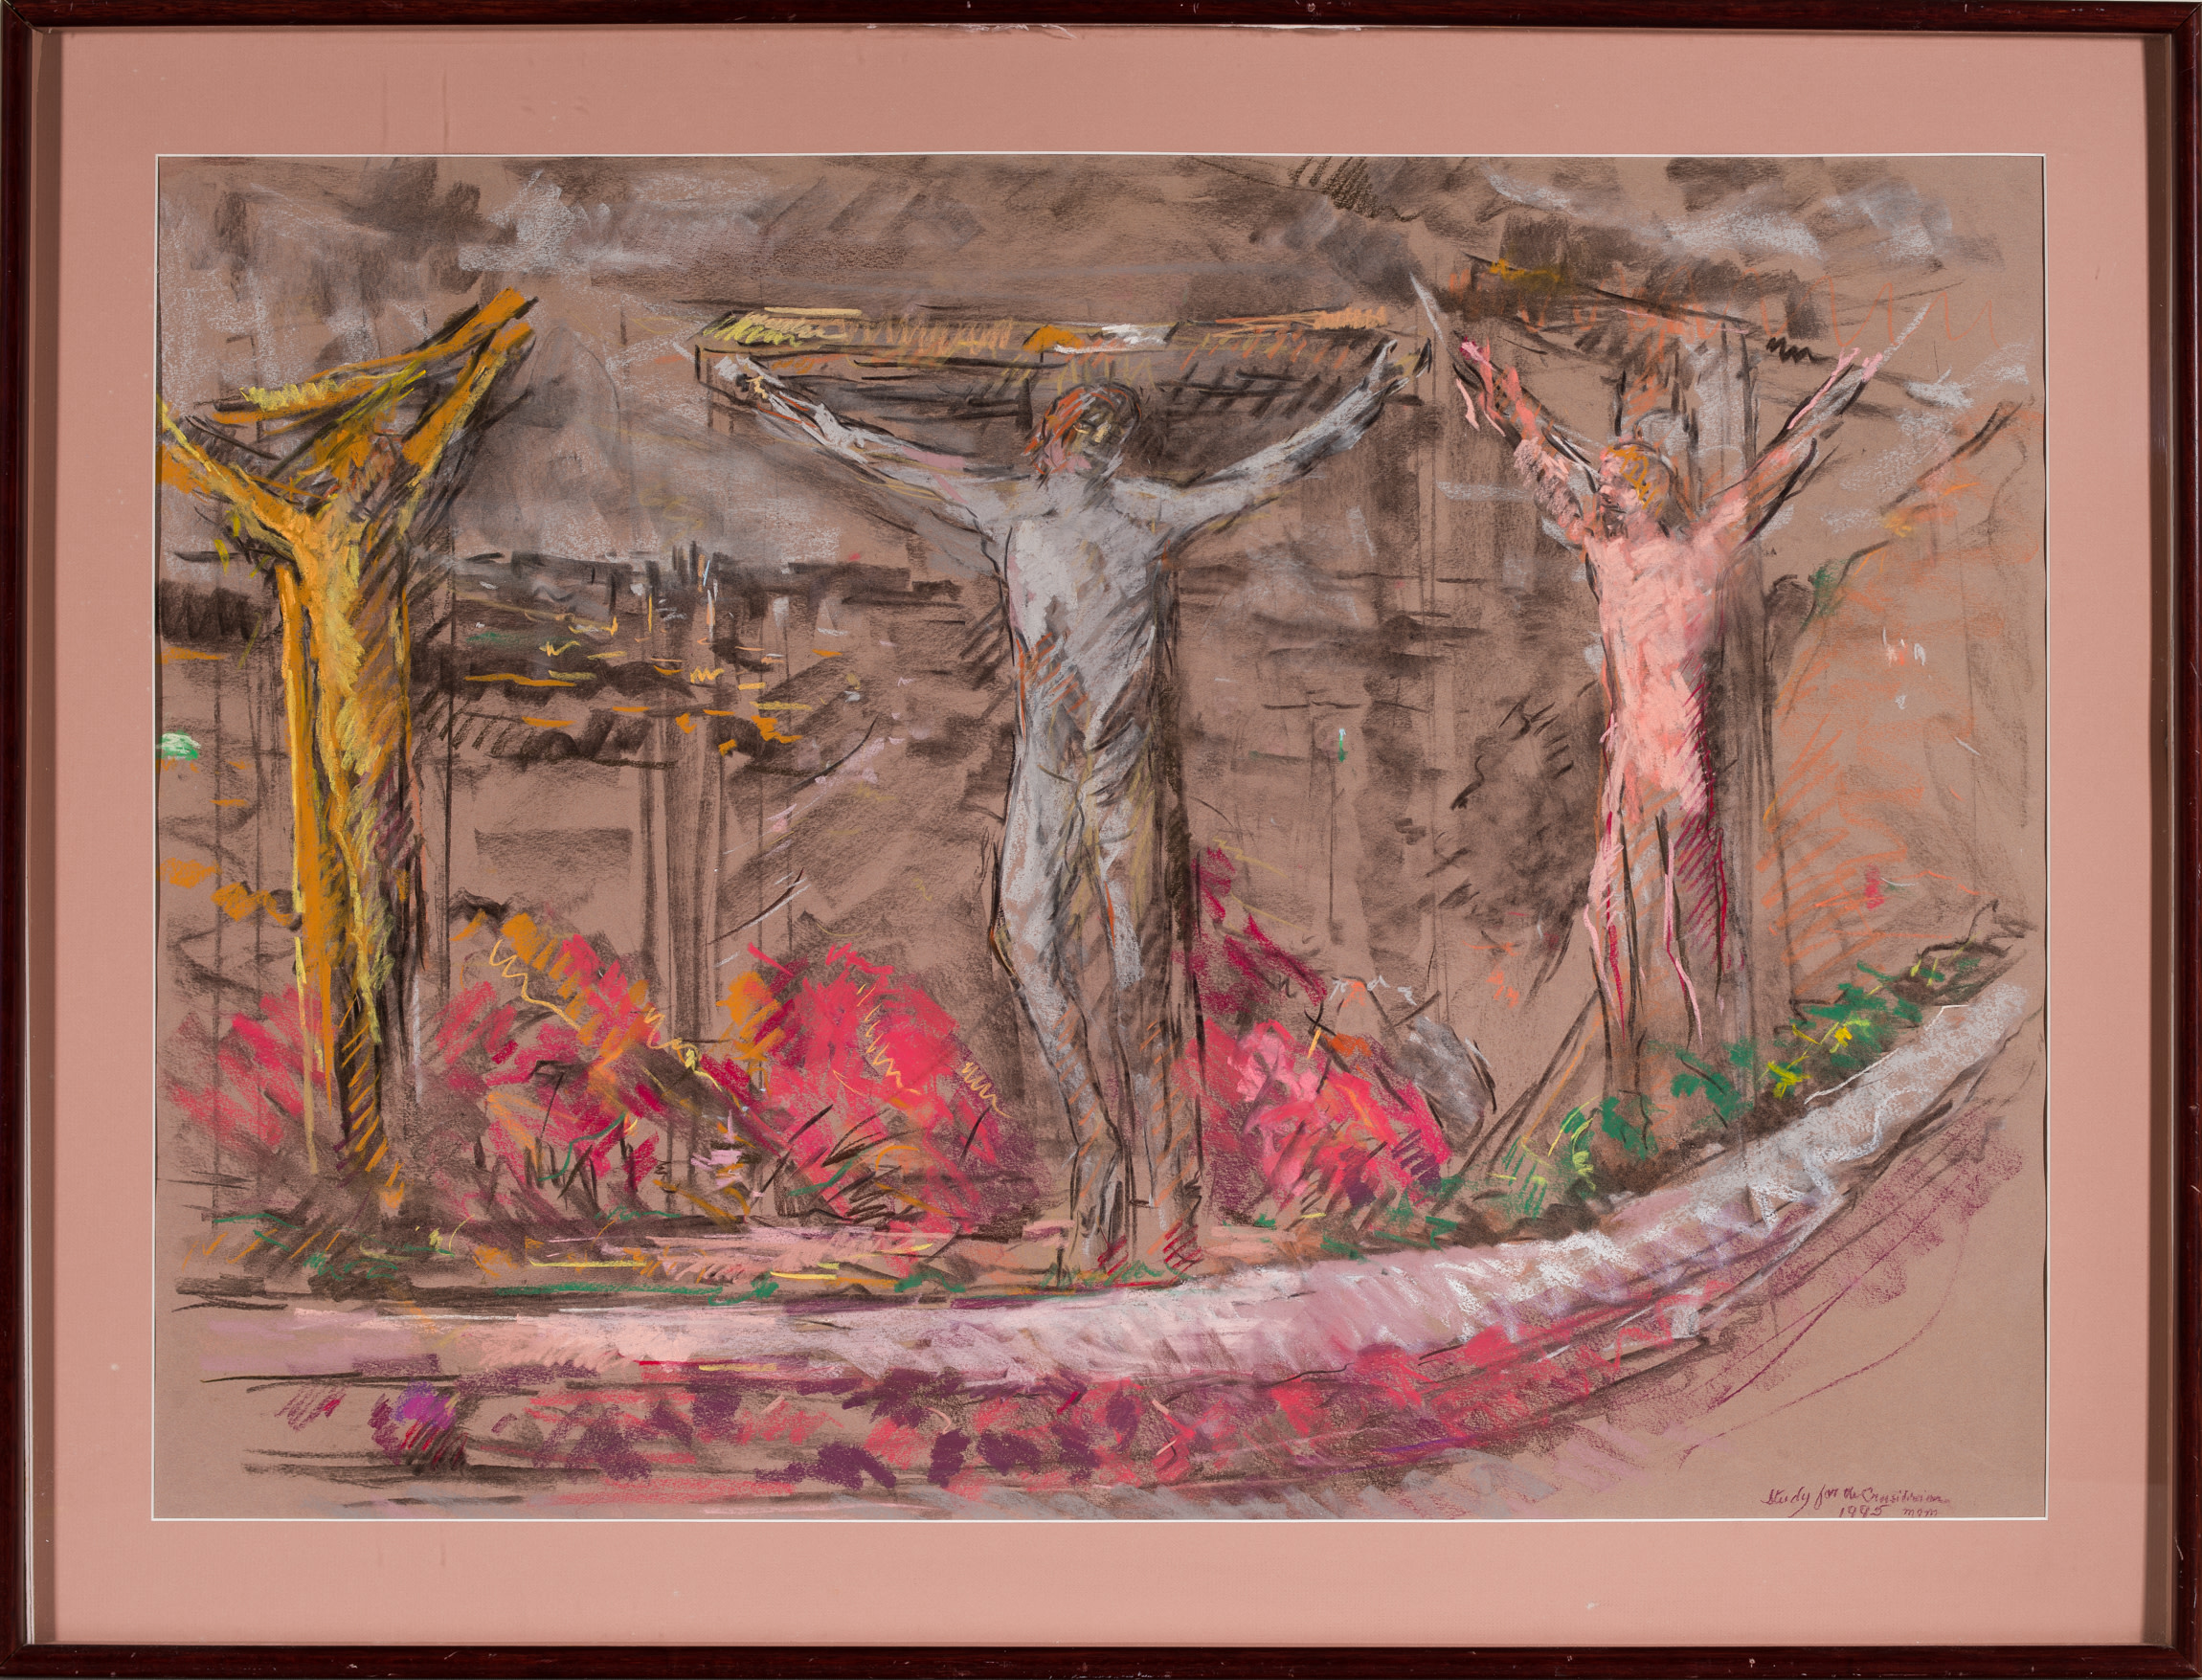 The Crucifixion by Miriam McClung | Artwork Archive